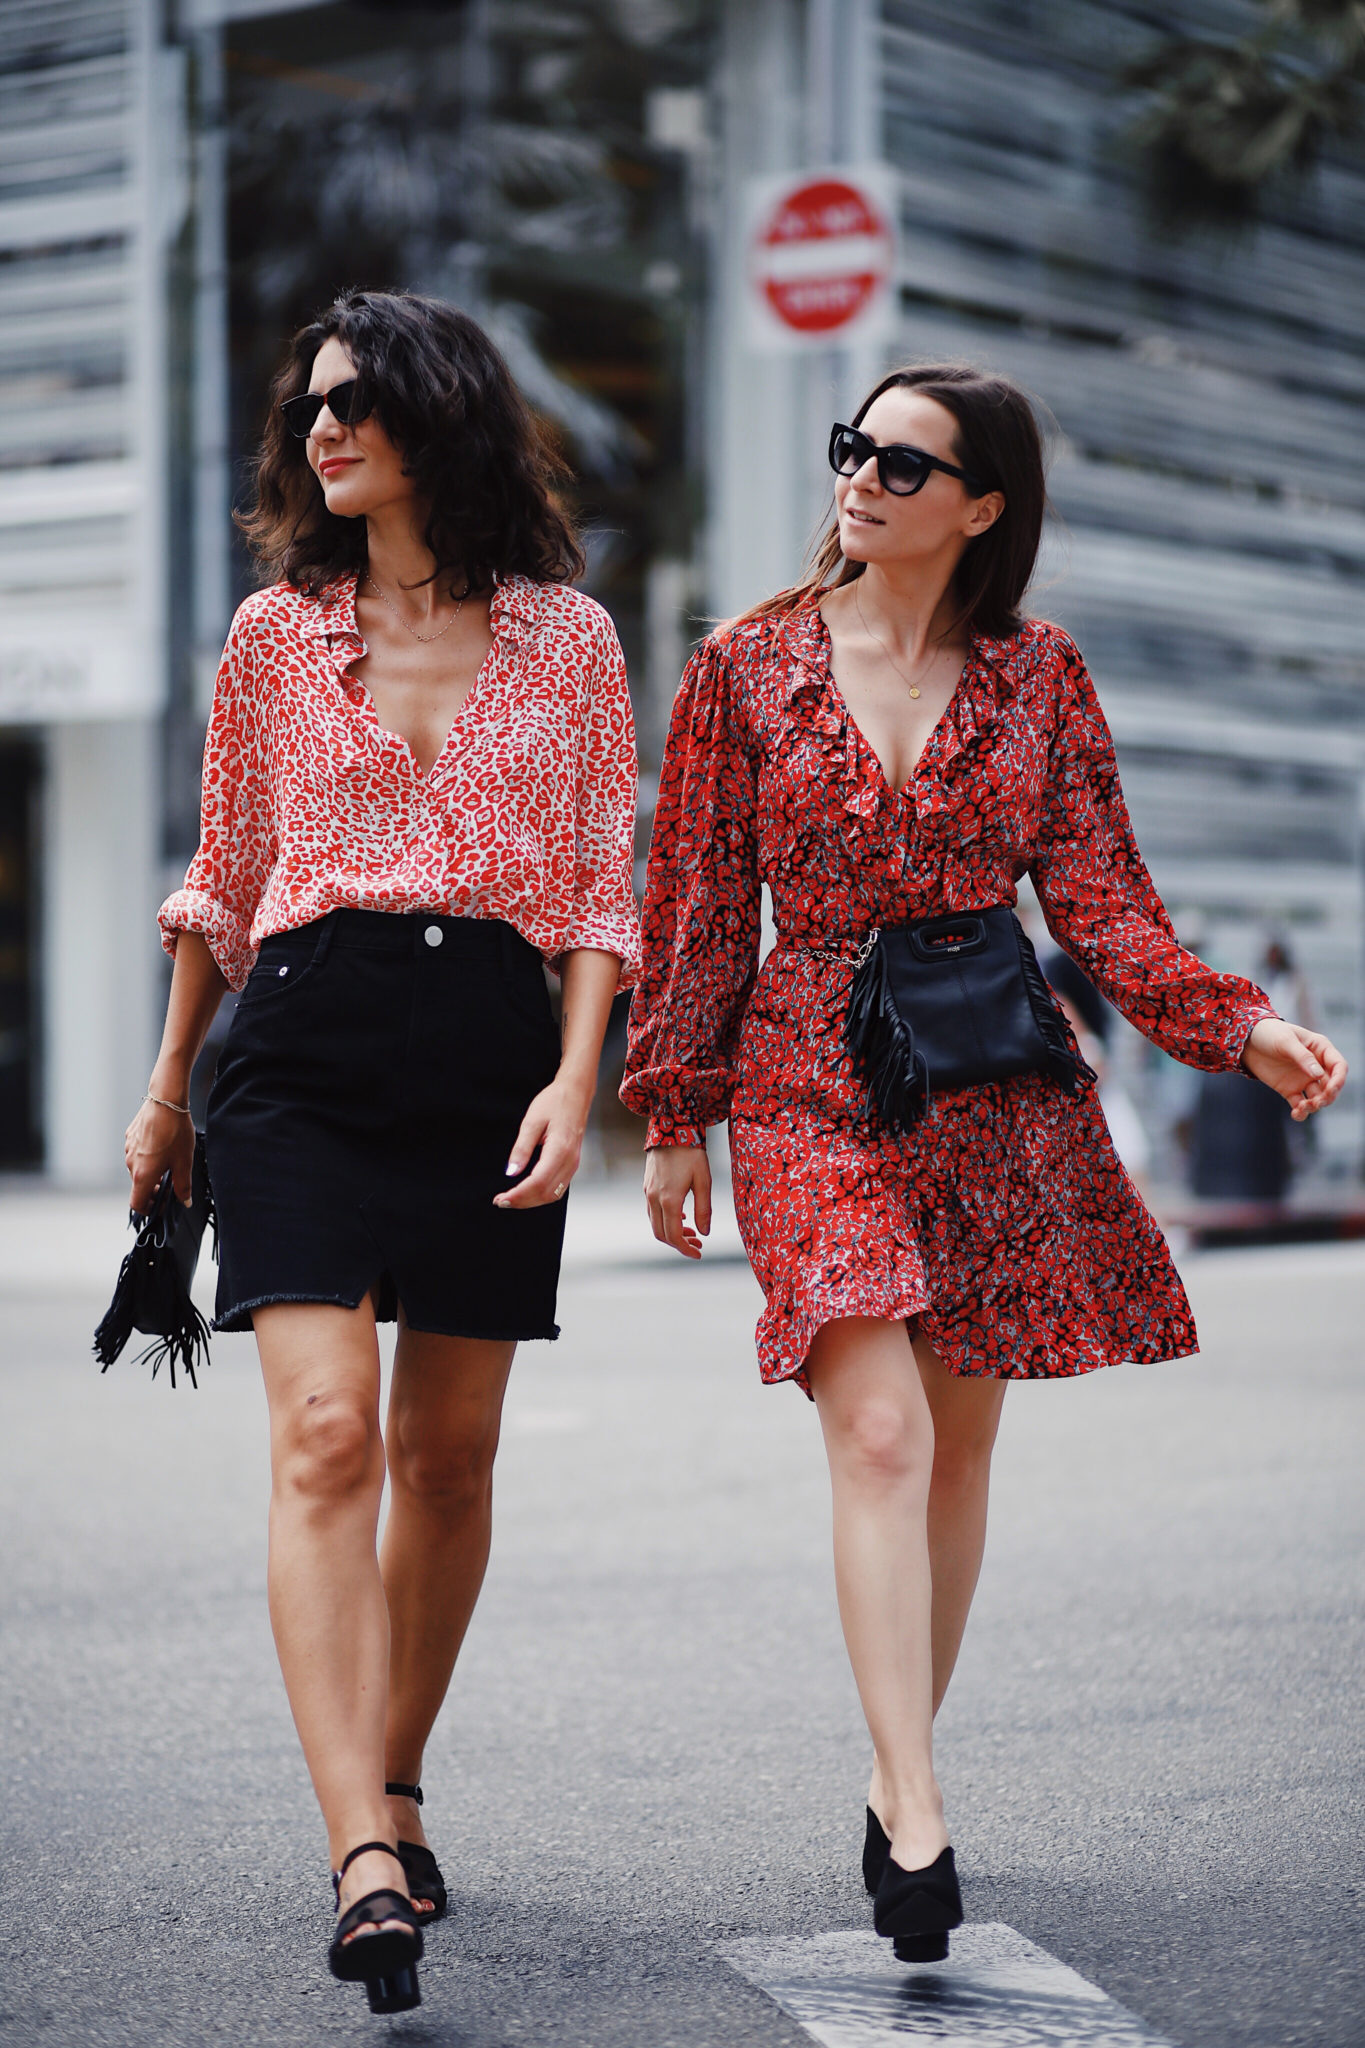 French Fashion Bloggers Julia Comil and Laura Albouy wearing the Maje Pre Fall Collection 2018 for the Maje Shopping Party in Beverly Drive - Trend: Leopard Print Dress Maje Mini M Bag Belt Bag - Parisian Style - French Fashion Blogger Los Angeles - Lookbook - Maje Beverly Drive